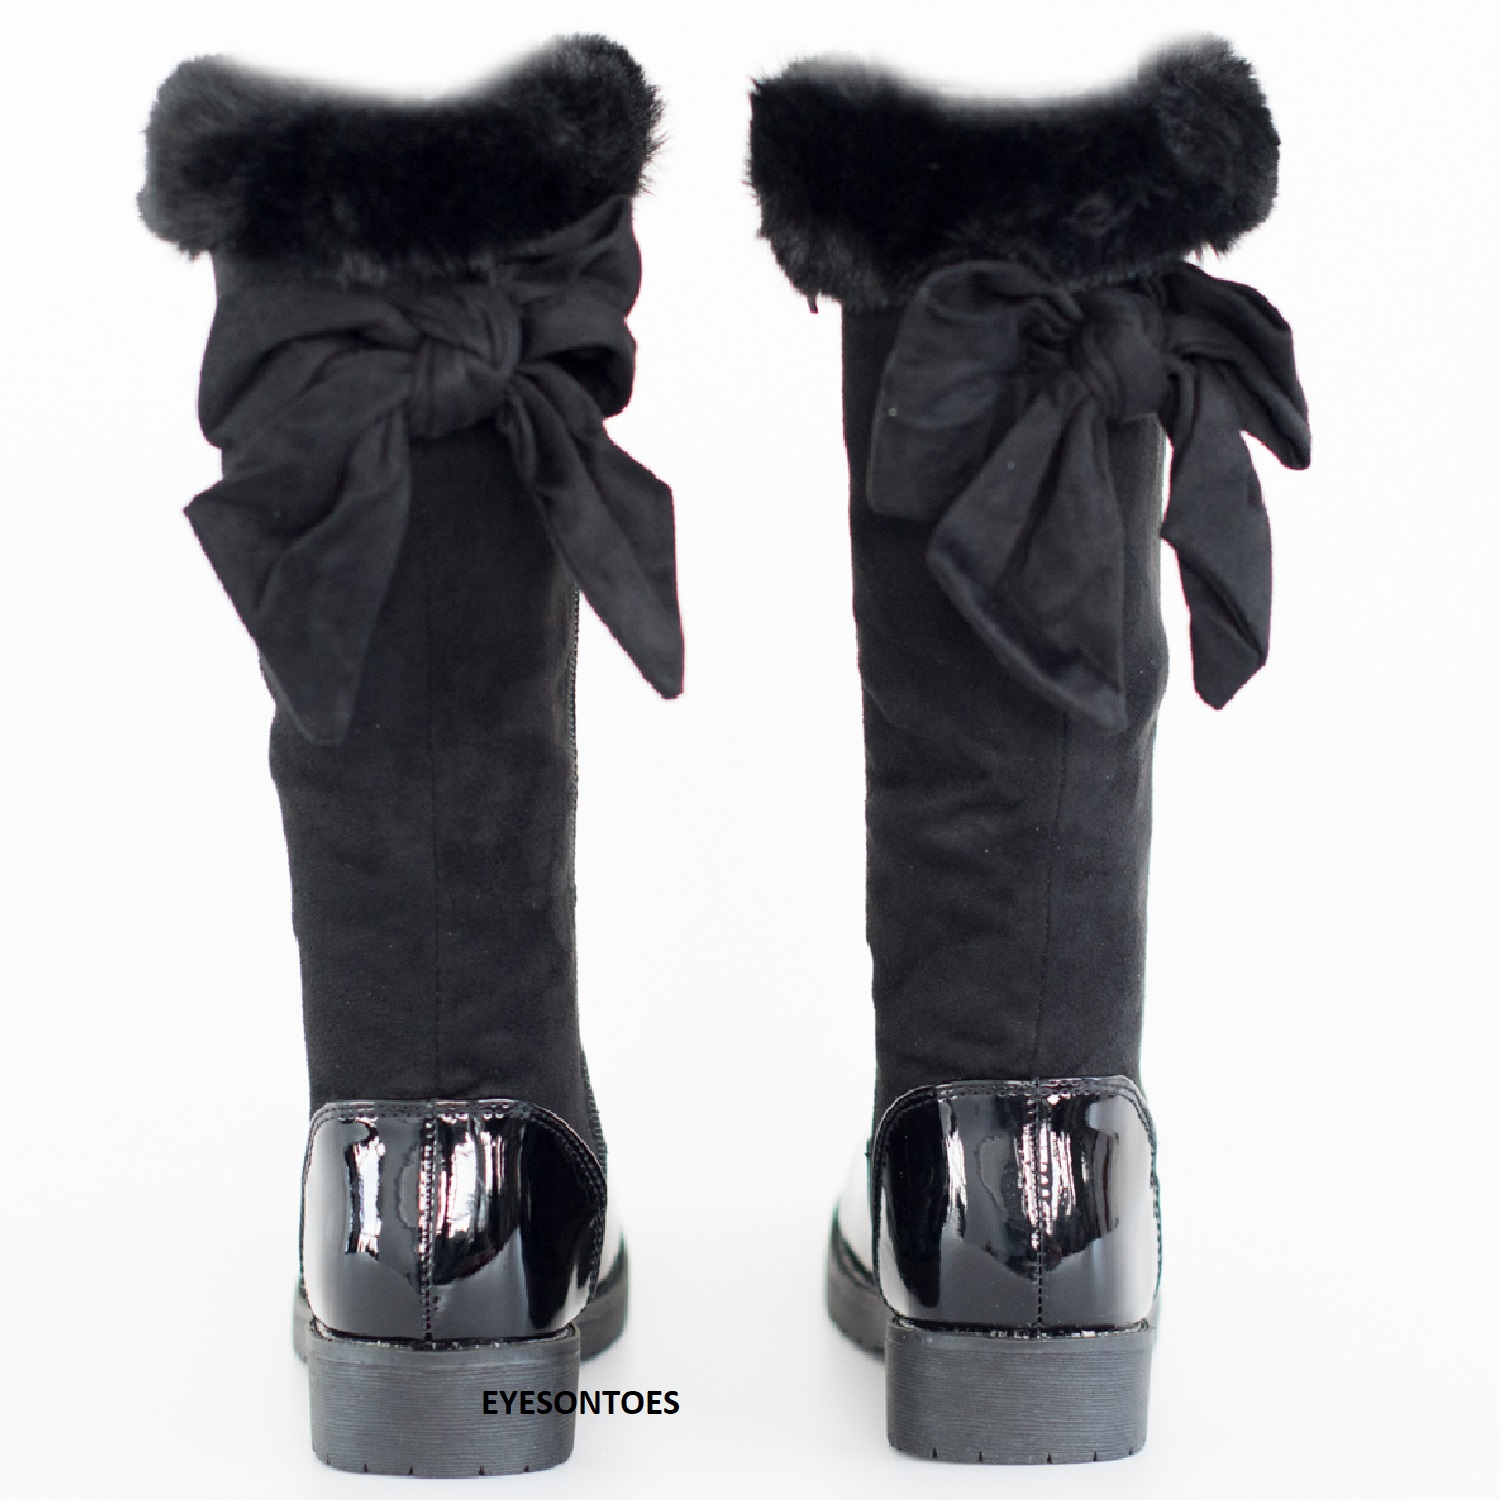 Weiyun Weiyun High Boots Children Kid Baby Girls Solid Over The Knee Flock Warm Boots Winter Shoes Brown